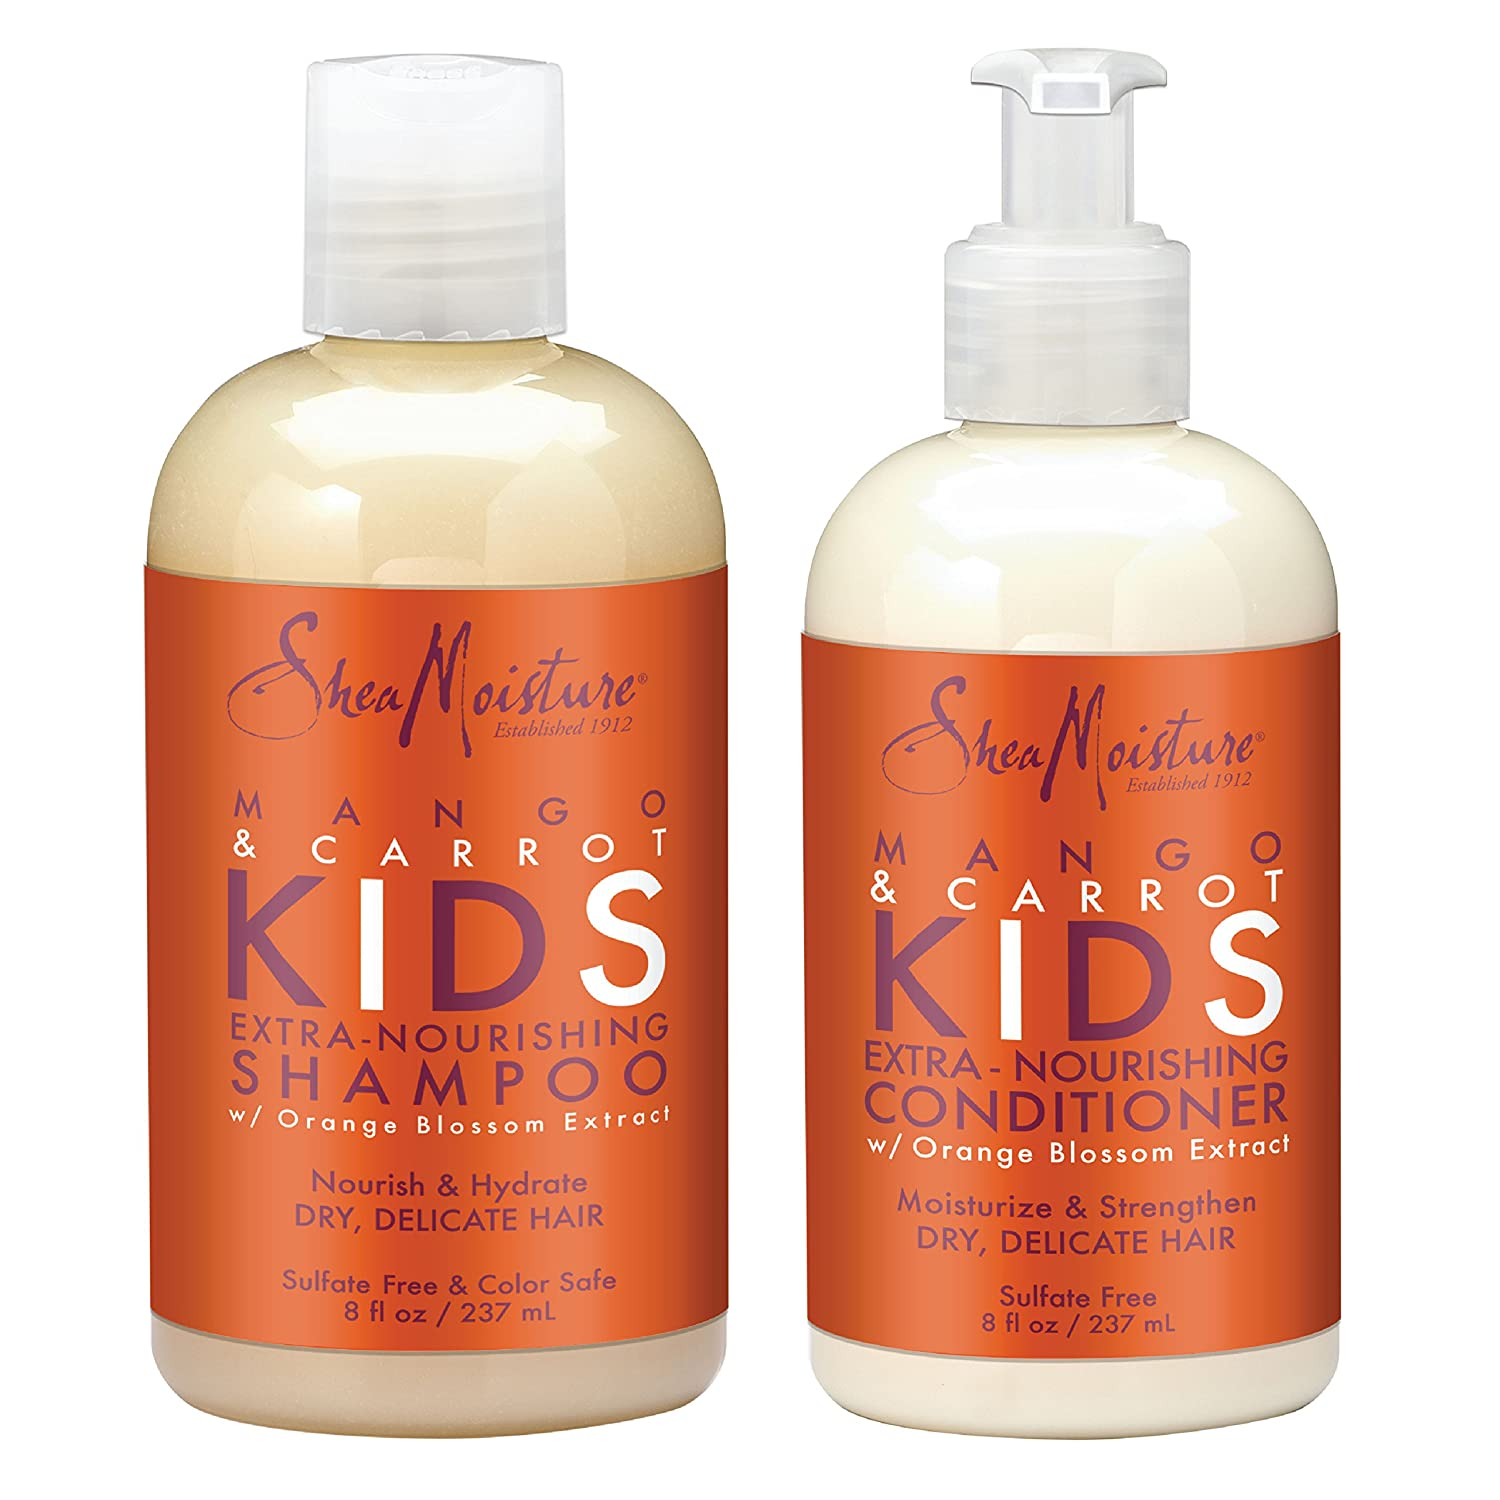 Sheamoisture Mango Carrot Kids Extra Nourishing Clear Shampoo Complete Soft Care Men 340 Ml And Conditioner Orange Blossom Extract Dry Delicate Hair 8 Fl Oz Each Beauty